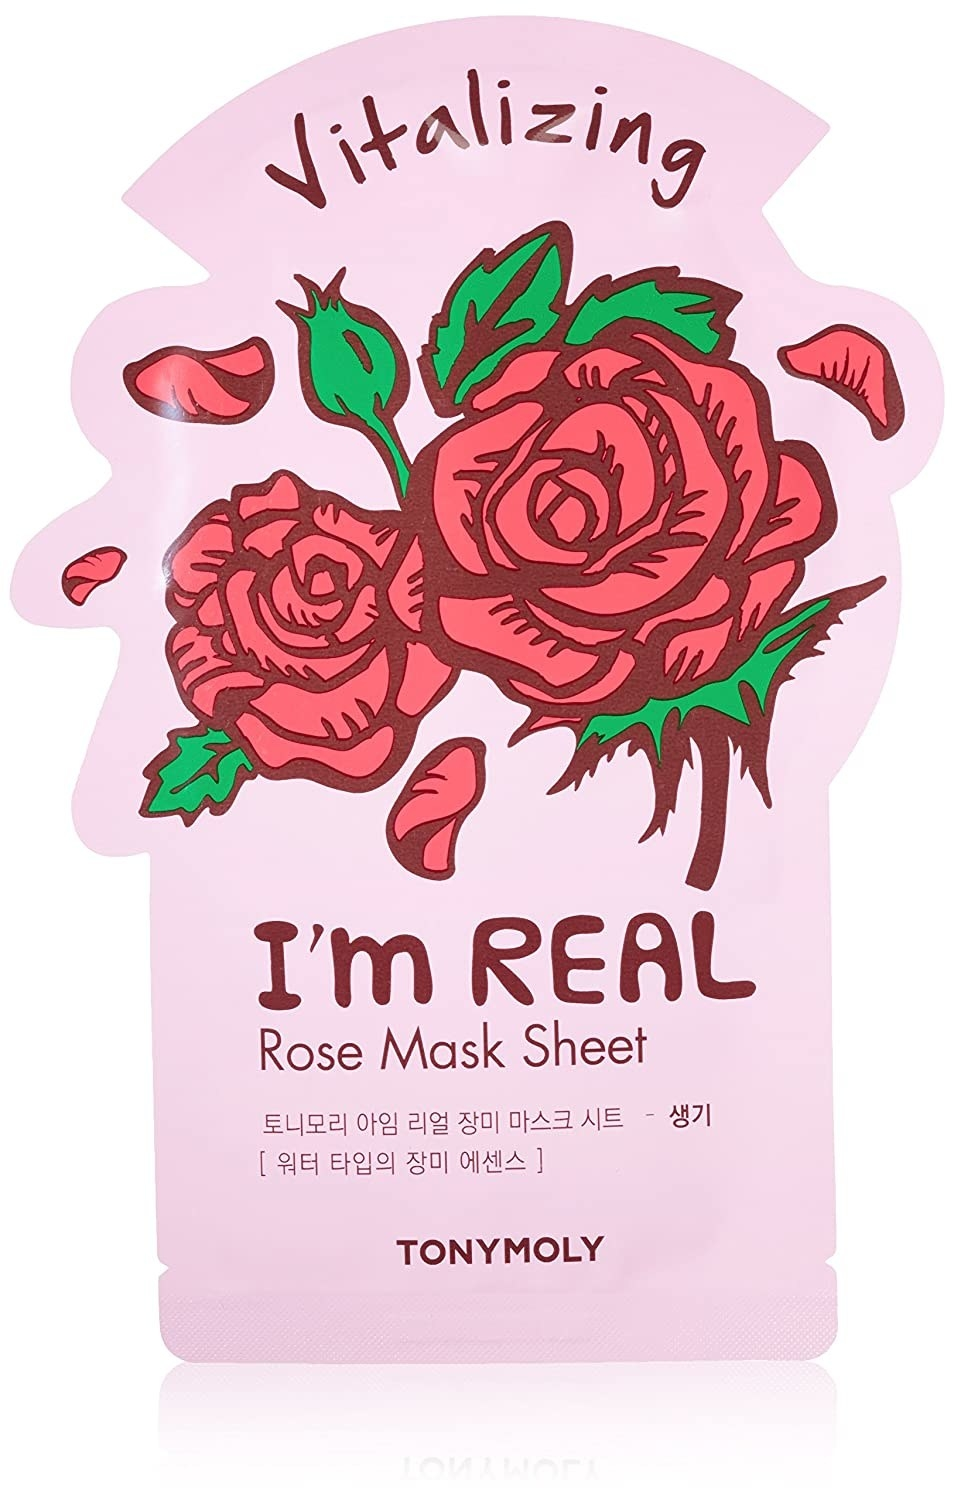 A pink sheet mask case with roses on it